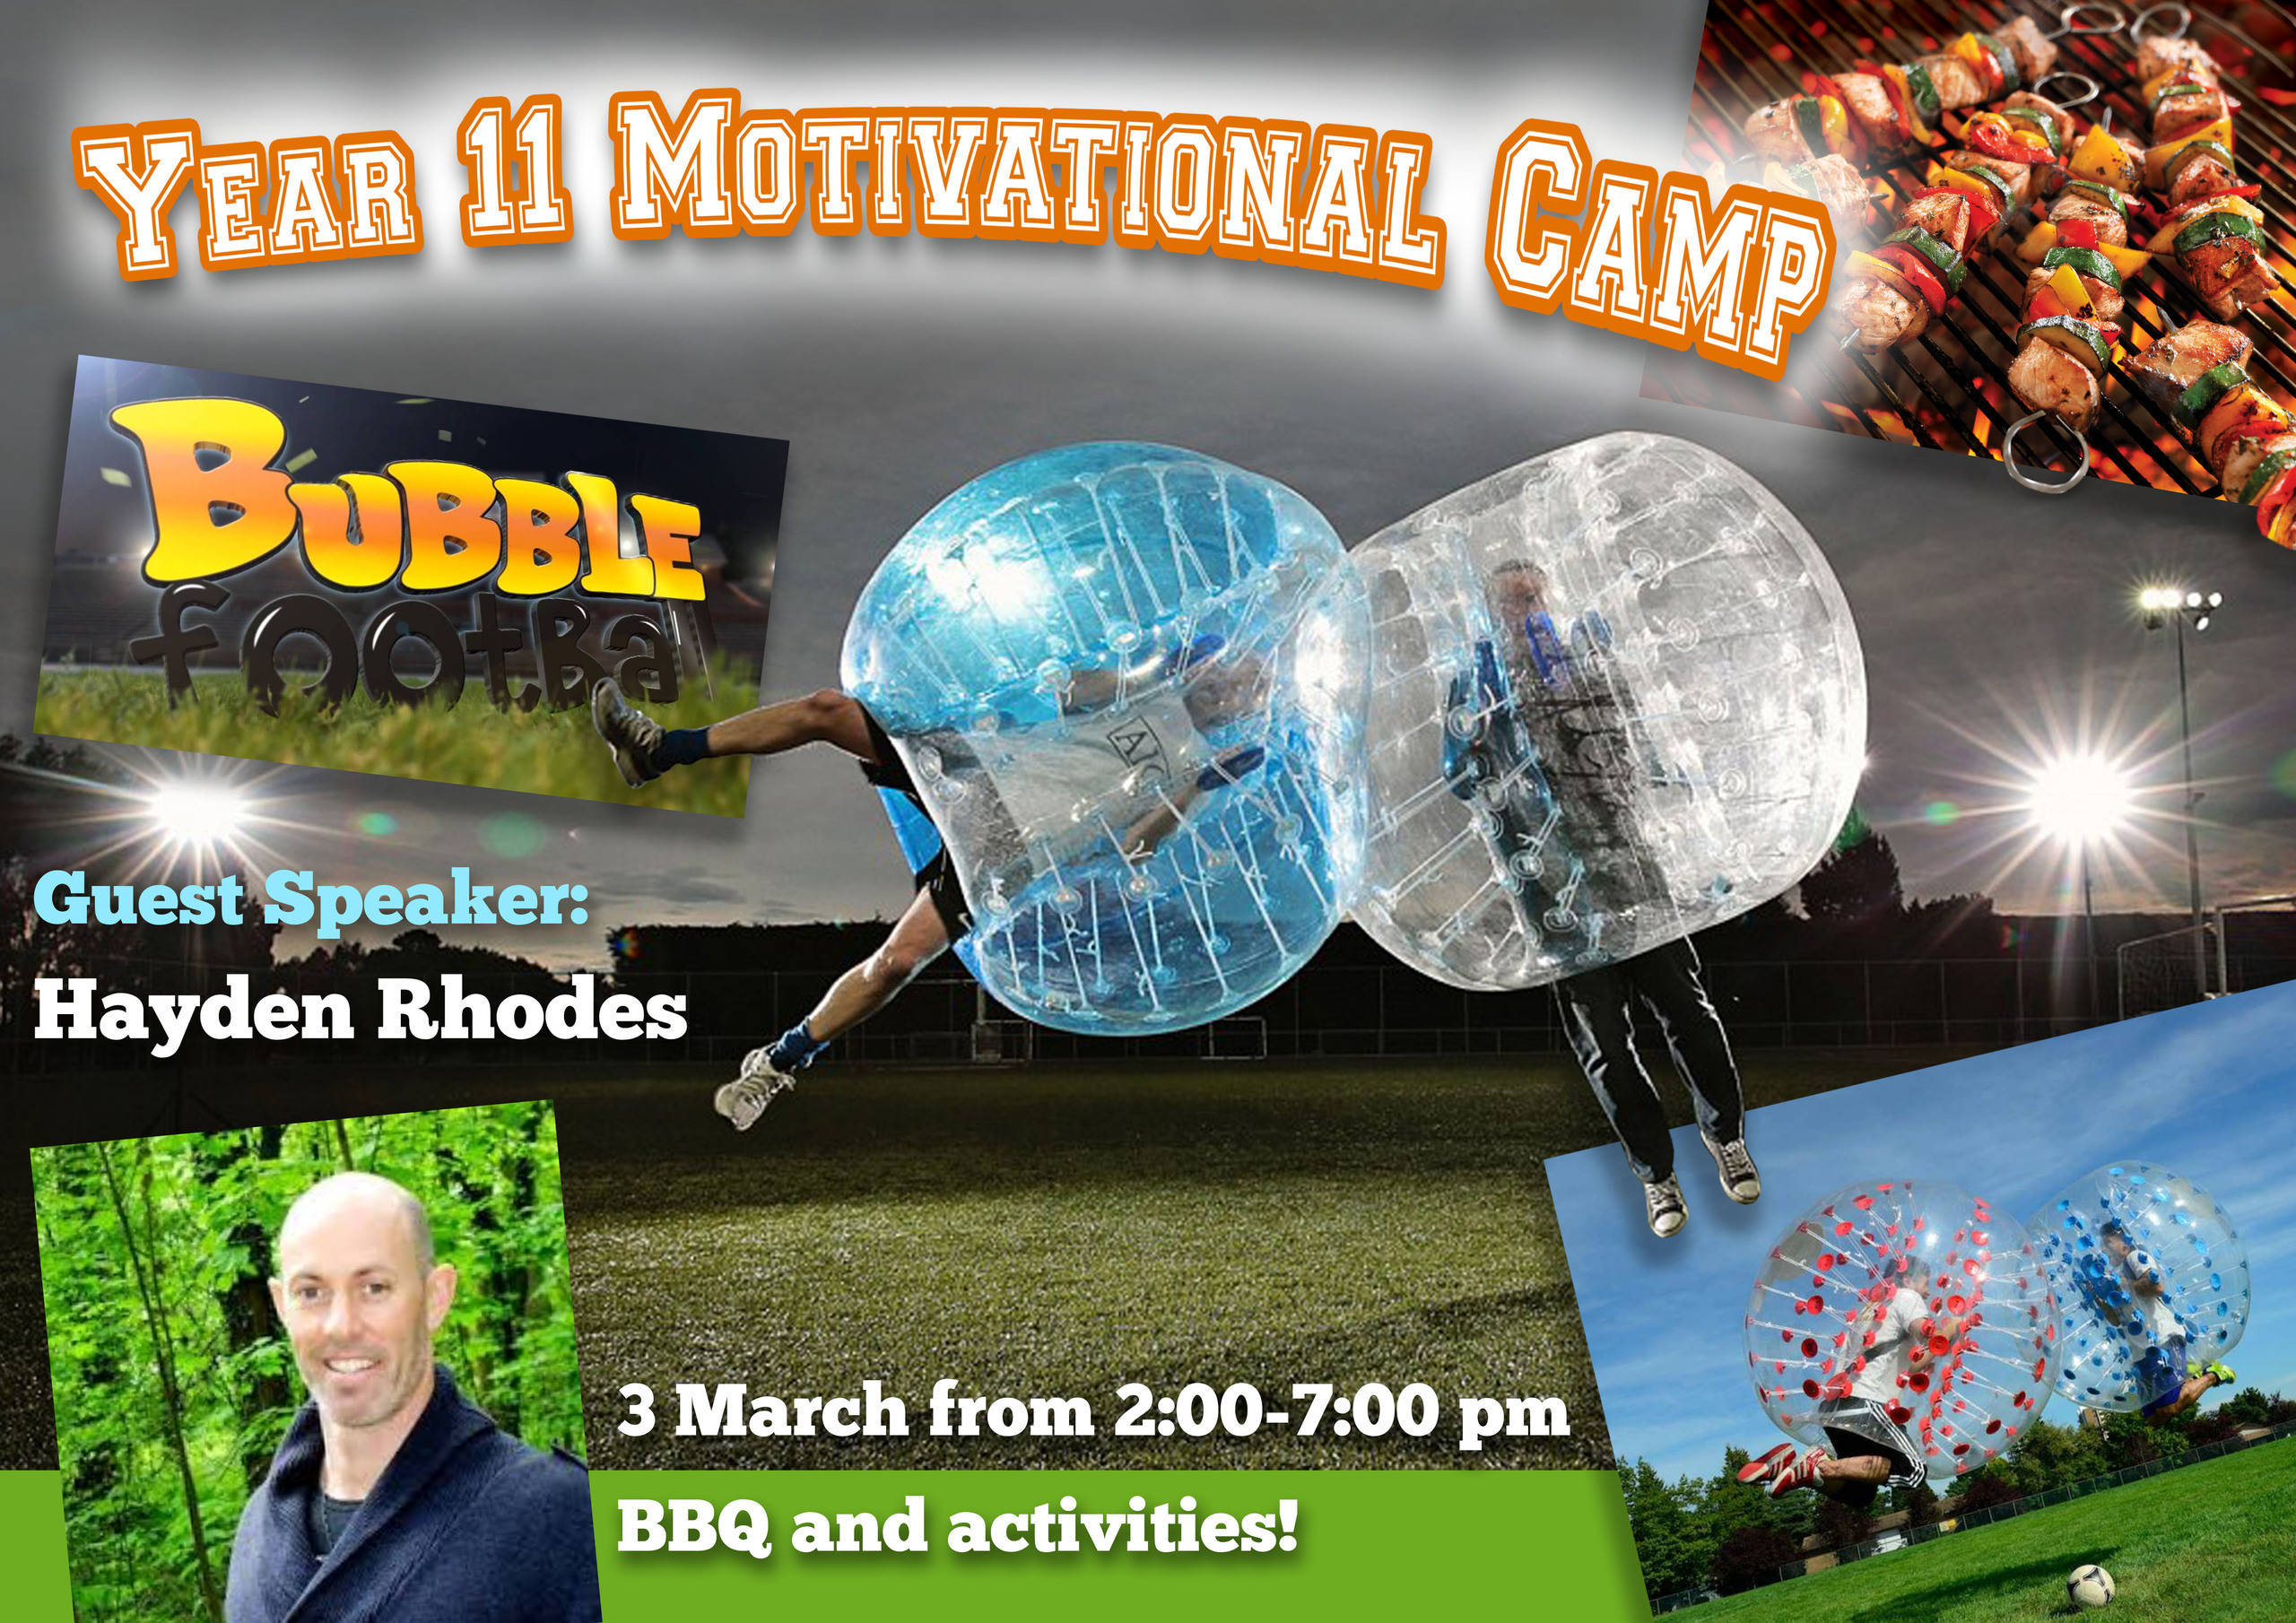 Year 11 Motivational Camp